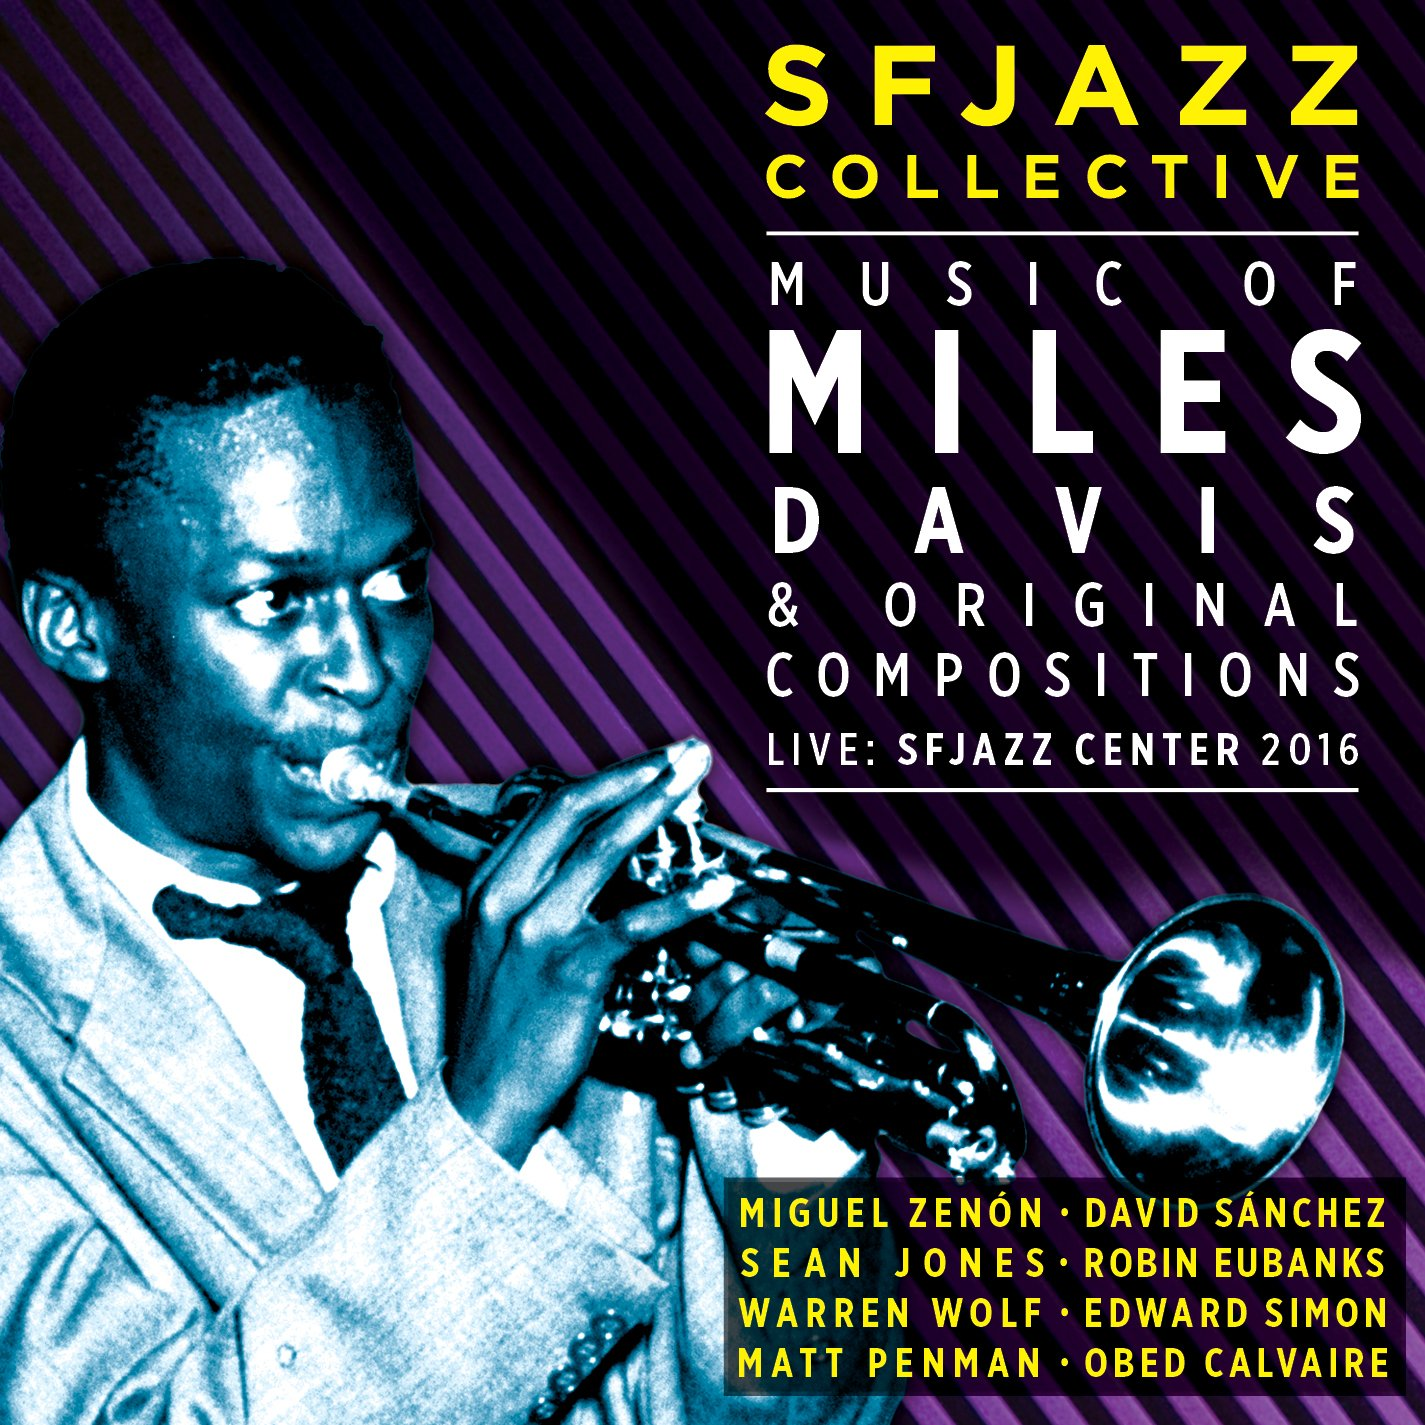 Live: SFJAZZ Center 2016 - The Music of Miles Davis and Original Compositions